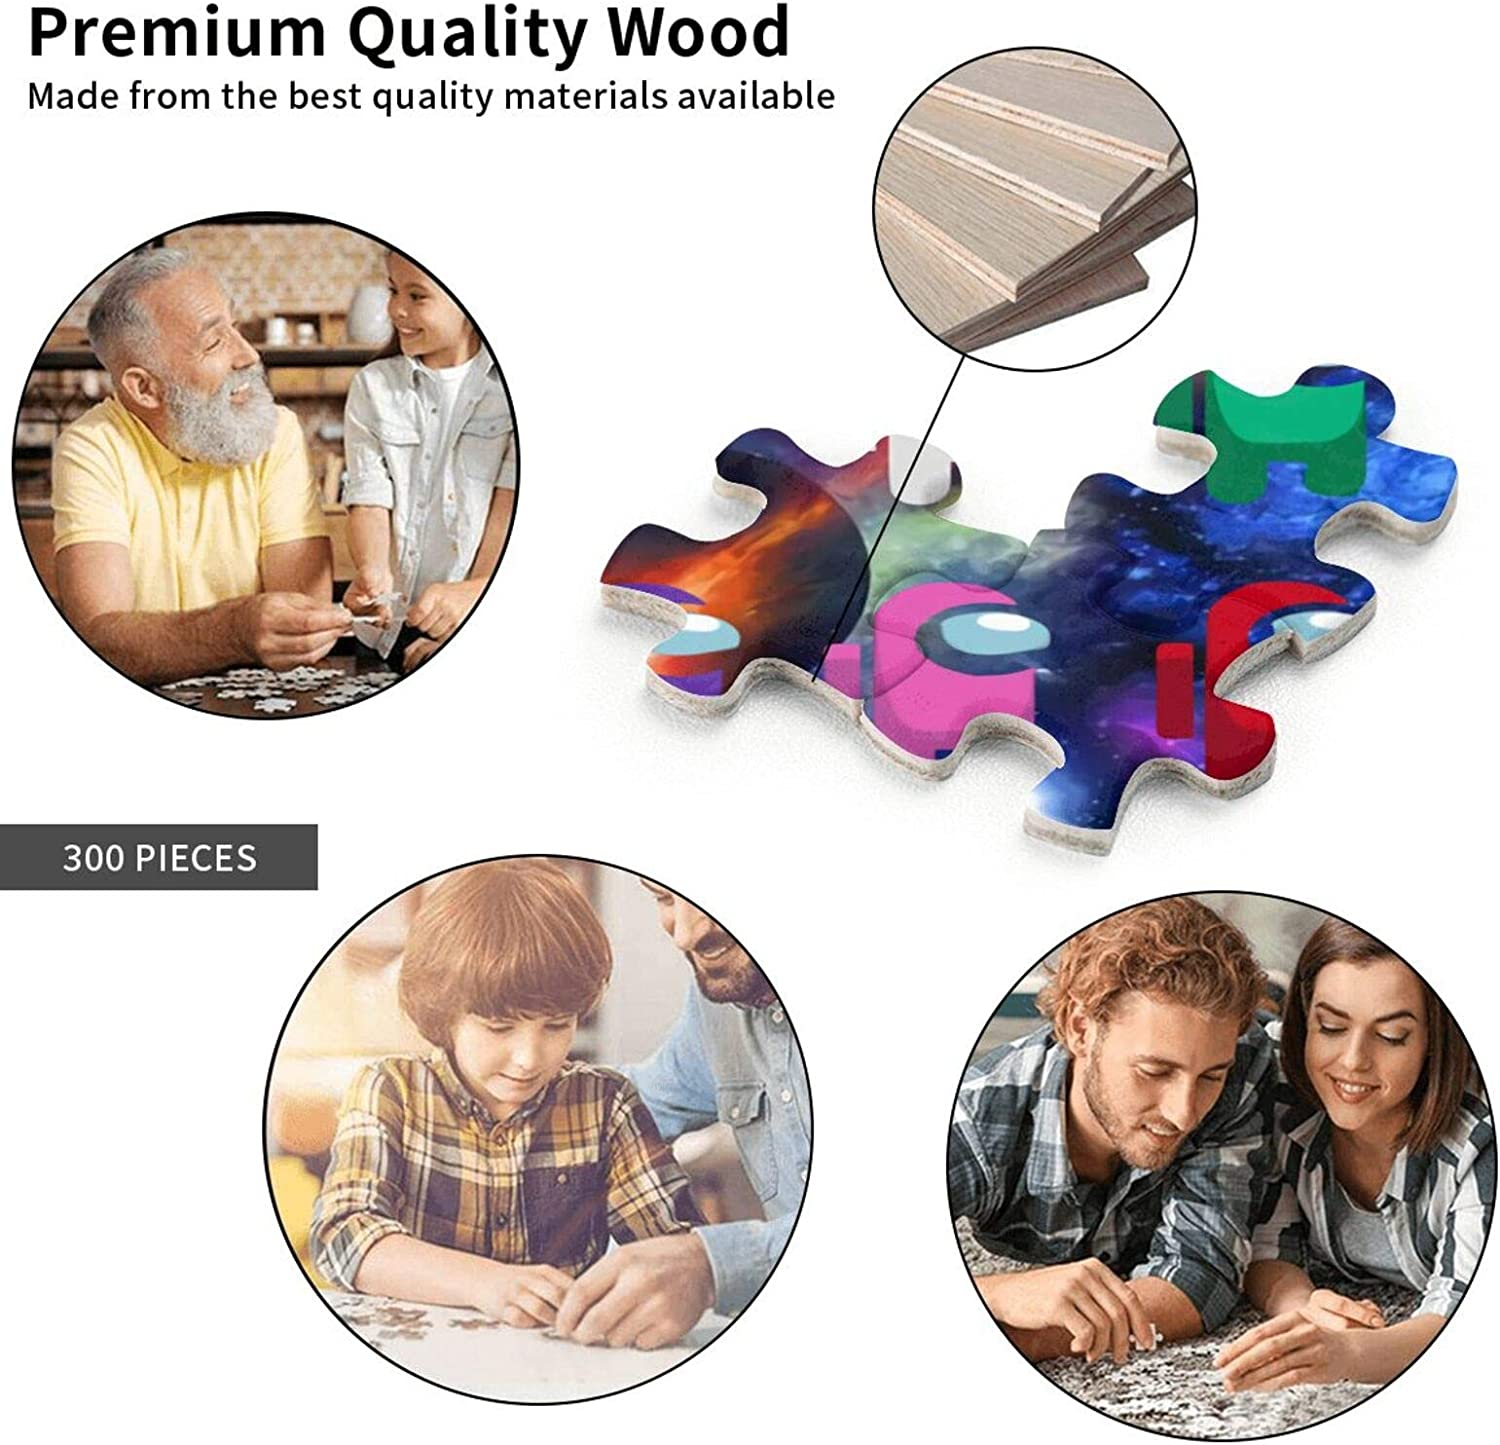 KEONSEN Among Us Puzzles 300 Piece Jigsaw Puzzles Can Fit Together Perfectly Adult Child Educational Toys and Fun Games